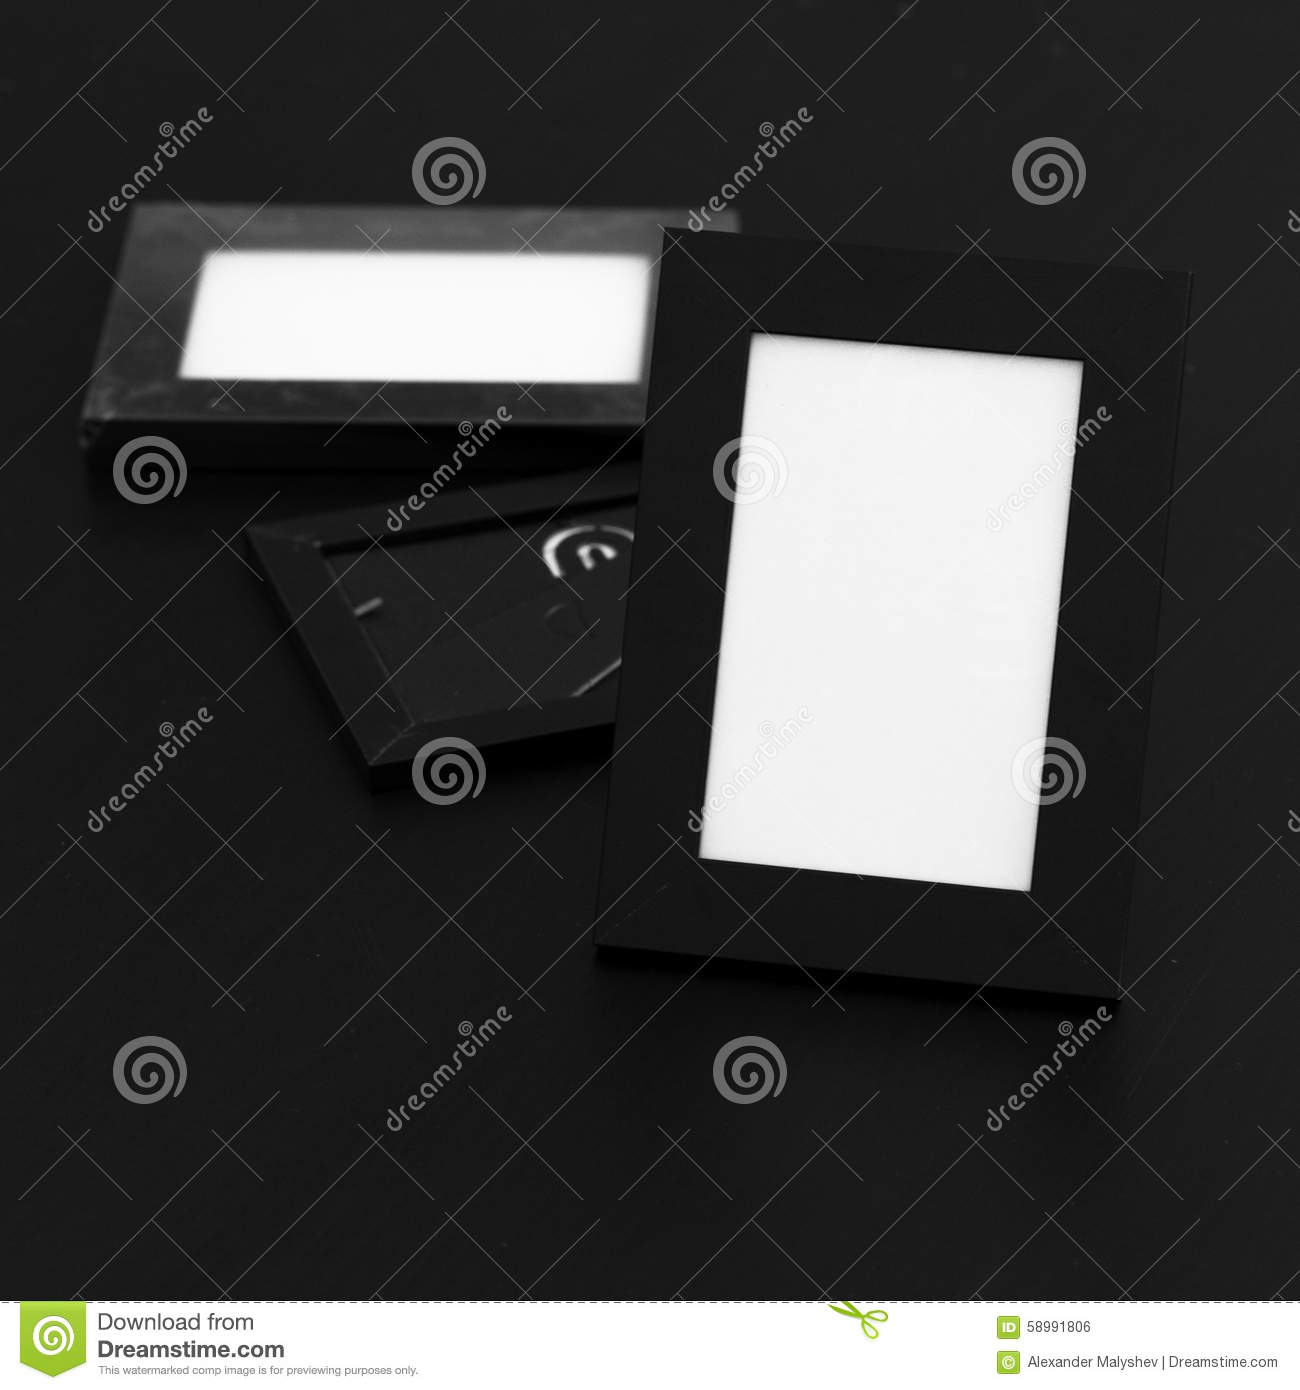 Empty Black Photo Frames On The Black Wooden Table Background. Stock ...